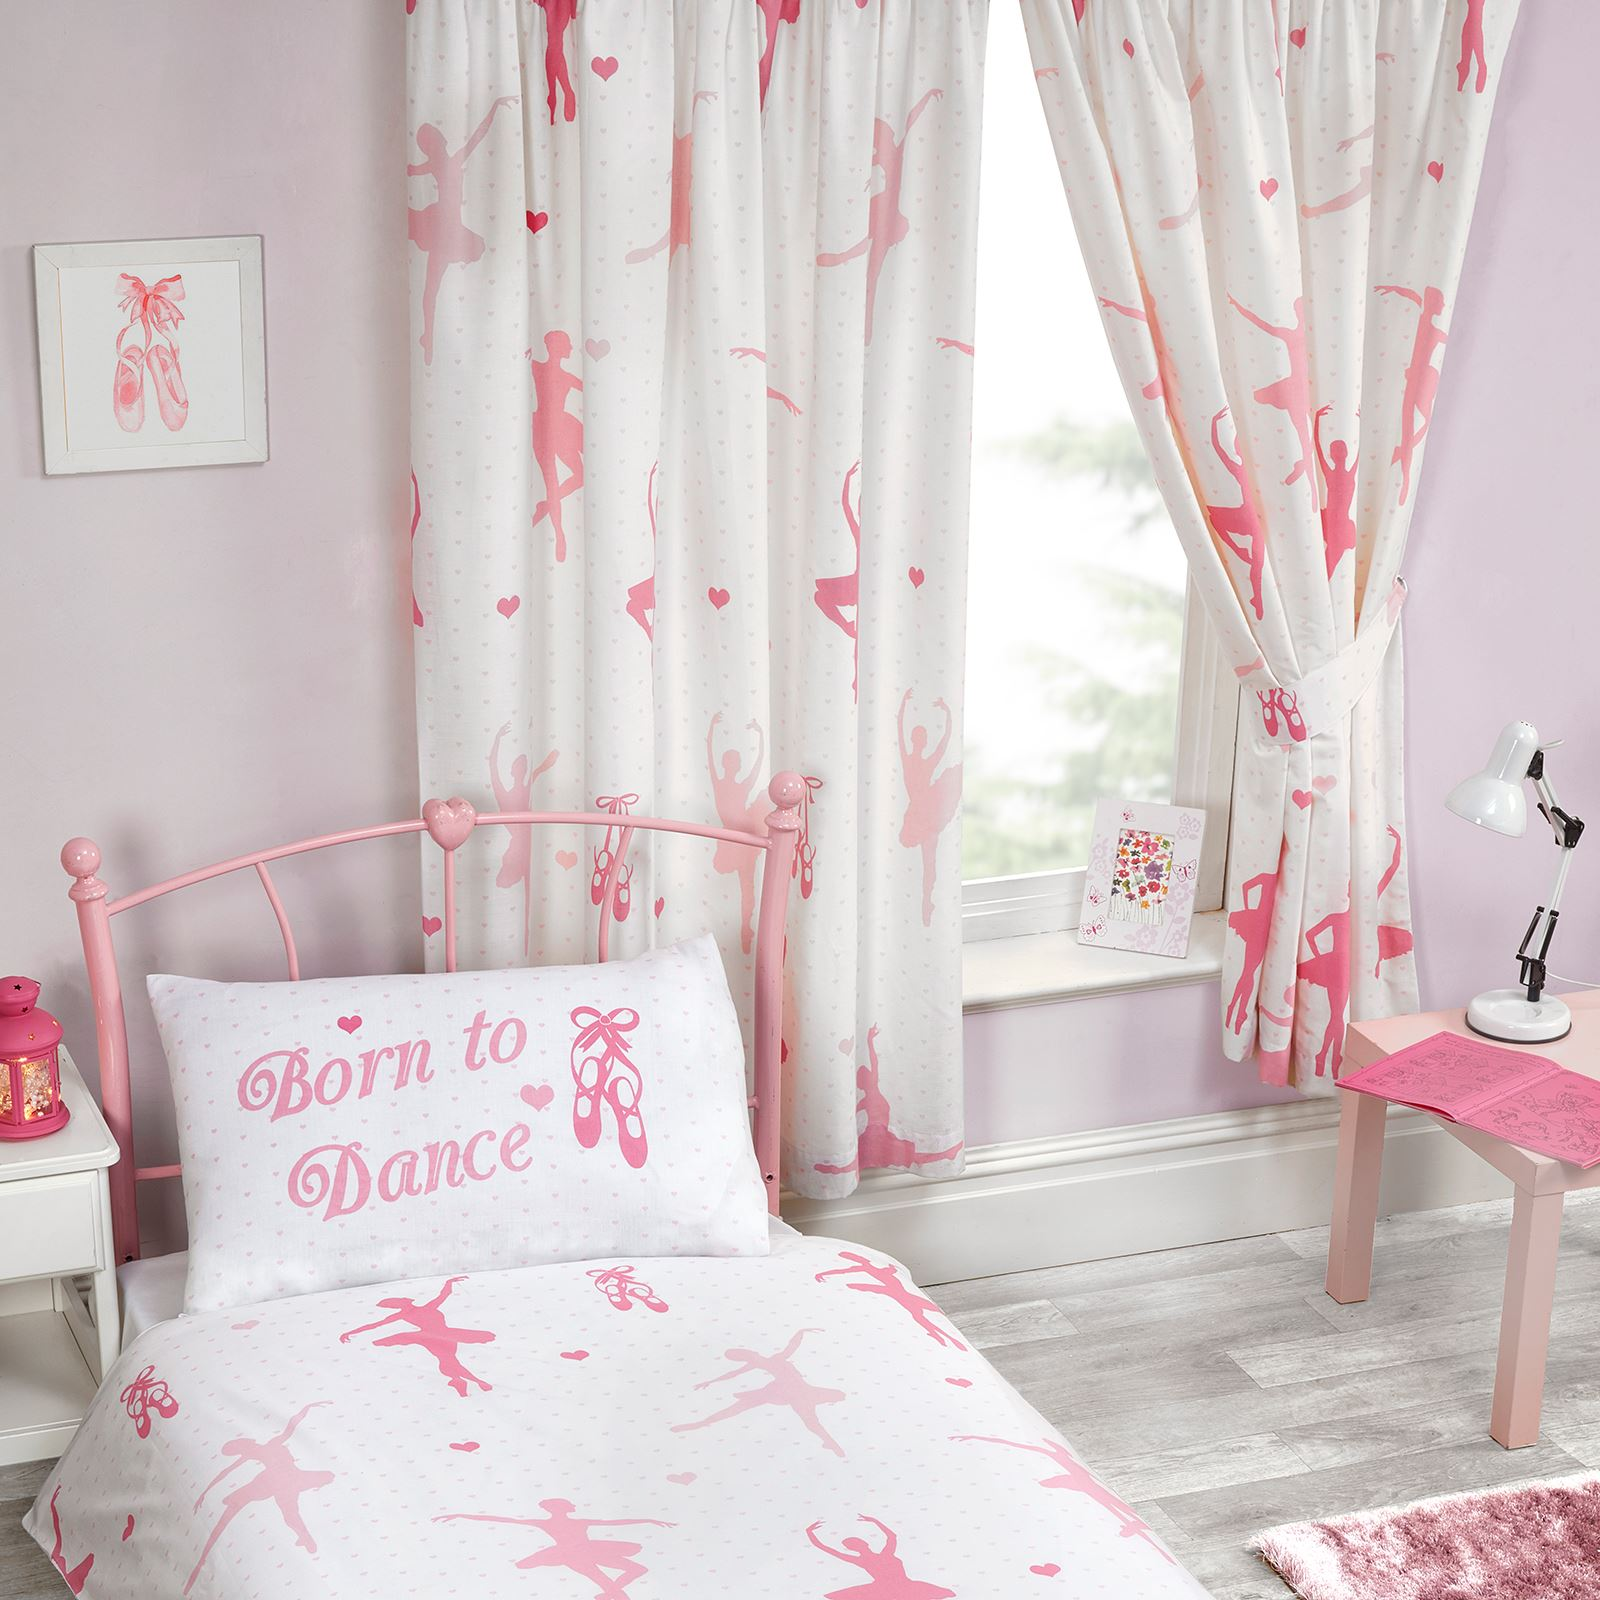 renovated curtain plinth in a and stock girls interior pink curtains empty room illustration has d of blank for mansion the